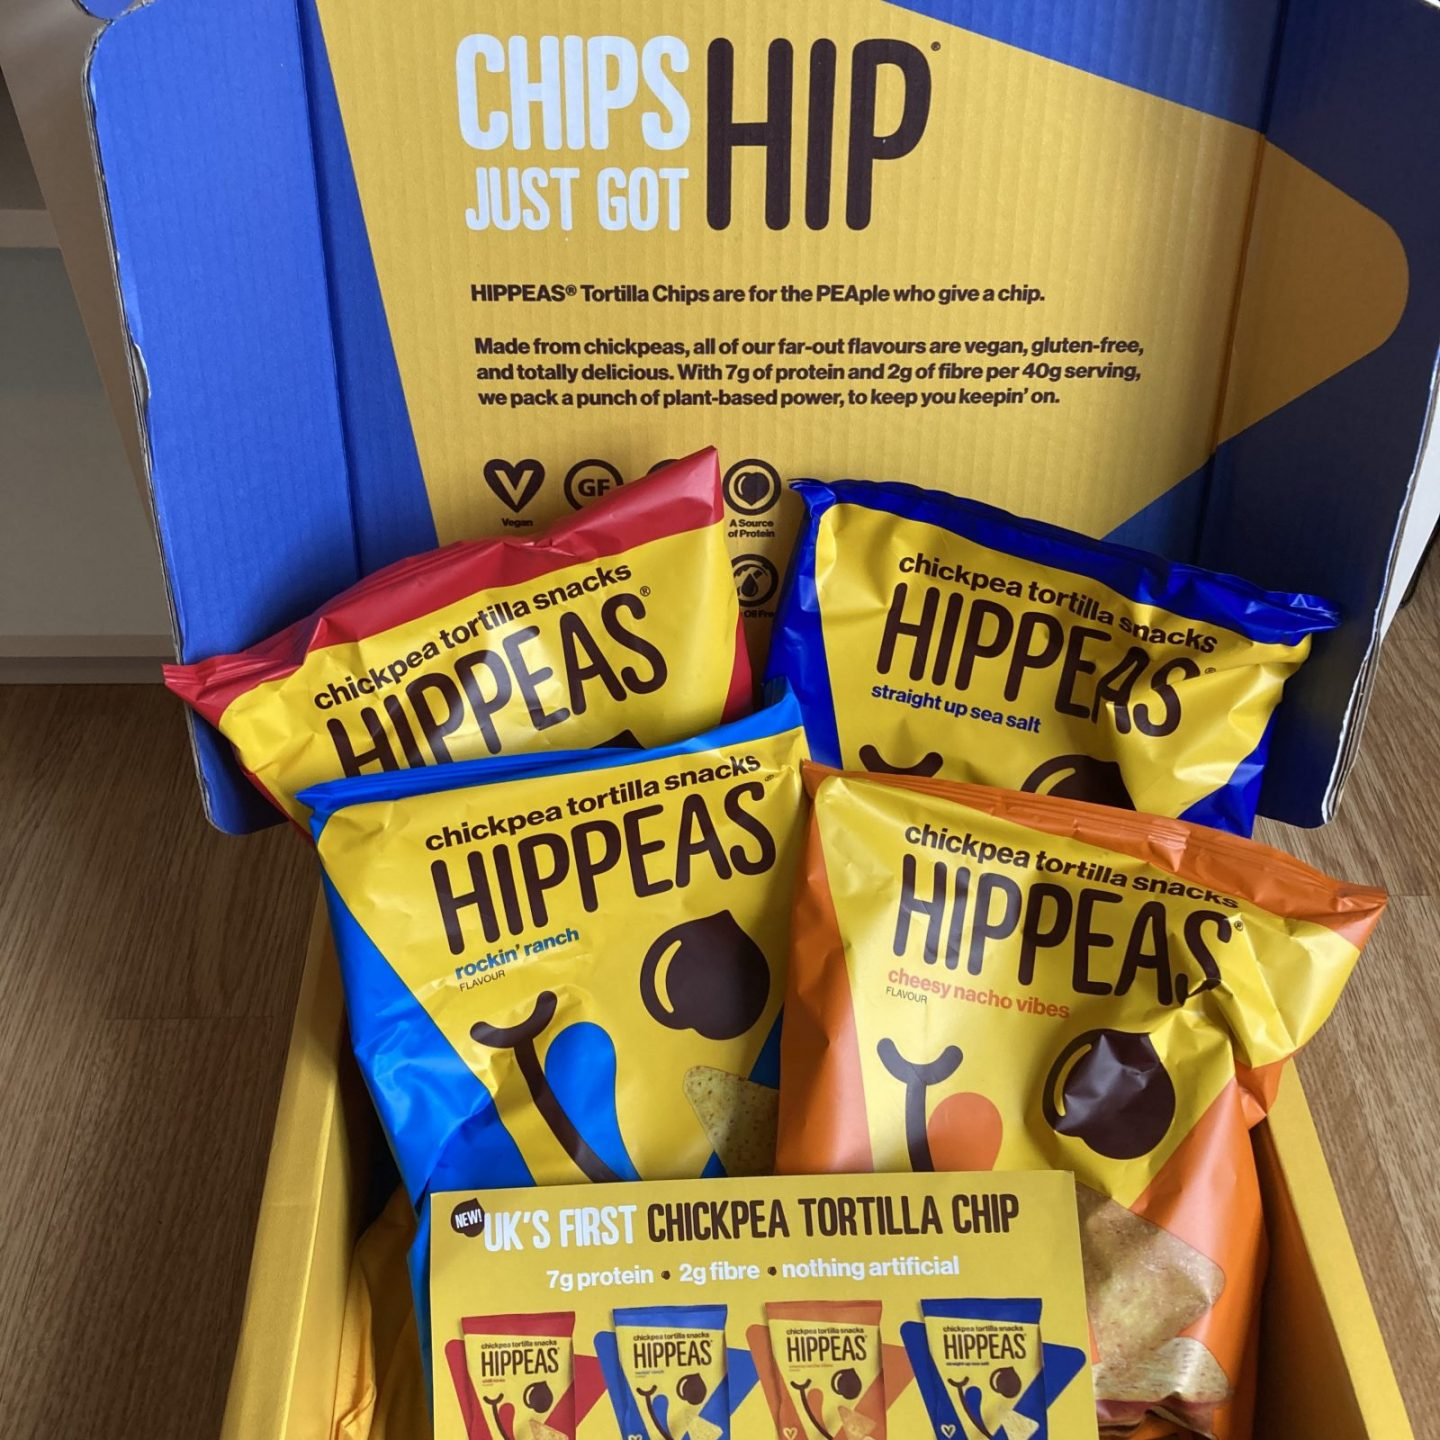 colourful box of hippeas tortilla chips in four different flavours, including yellow promotional leaflets